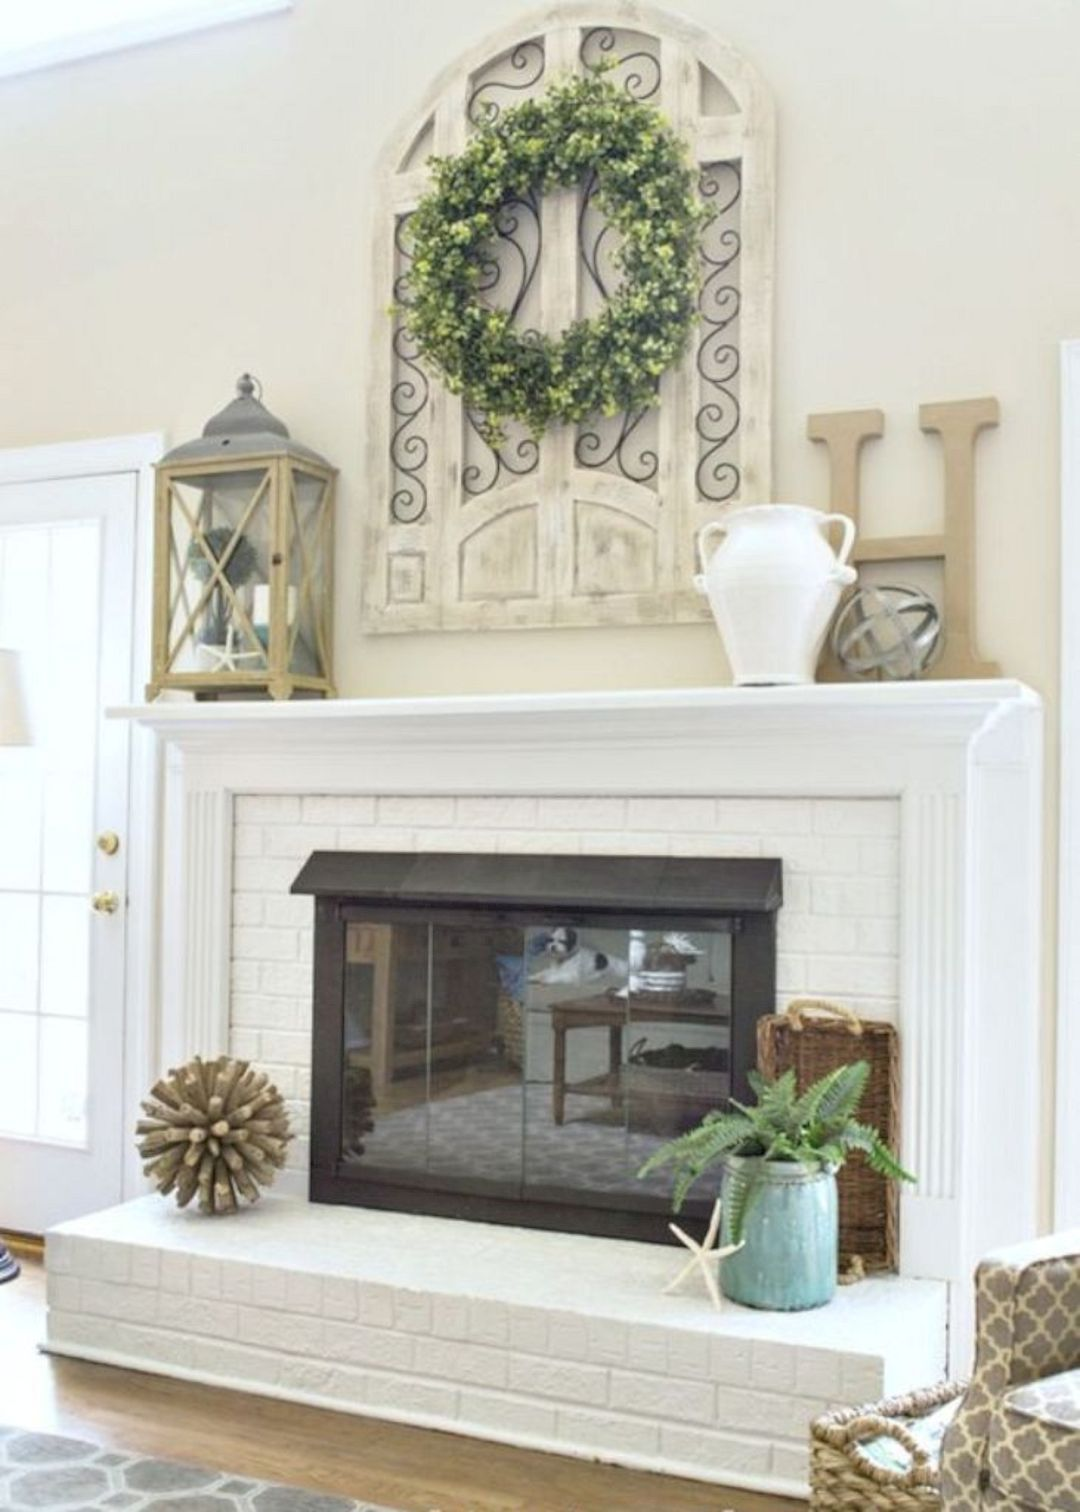 Brick Fireplace With Wood Mantel Html Amazing Home Design 2019